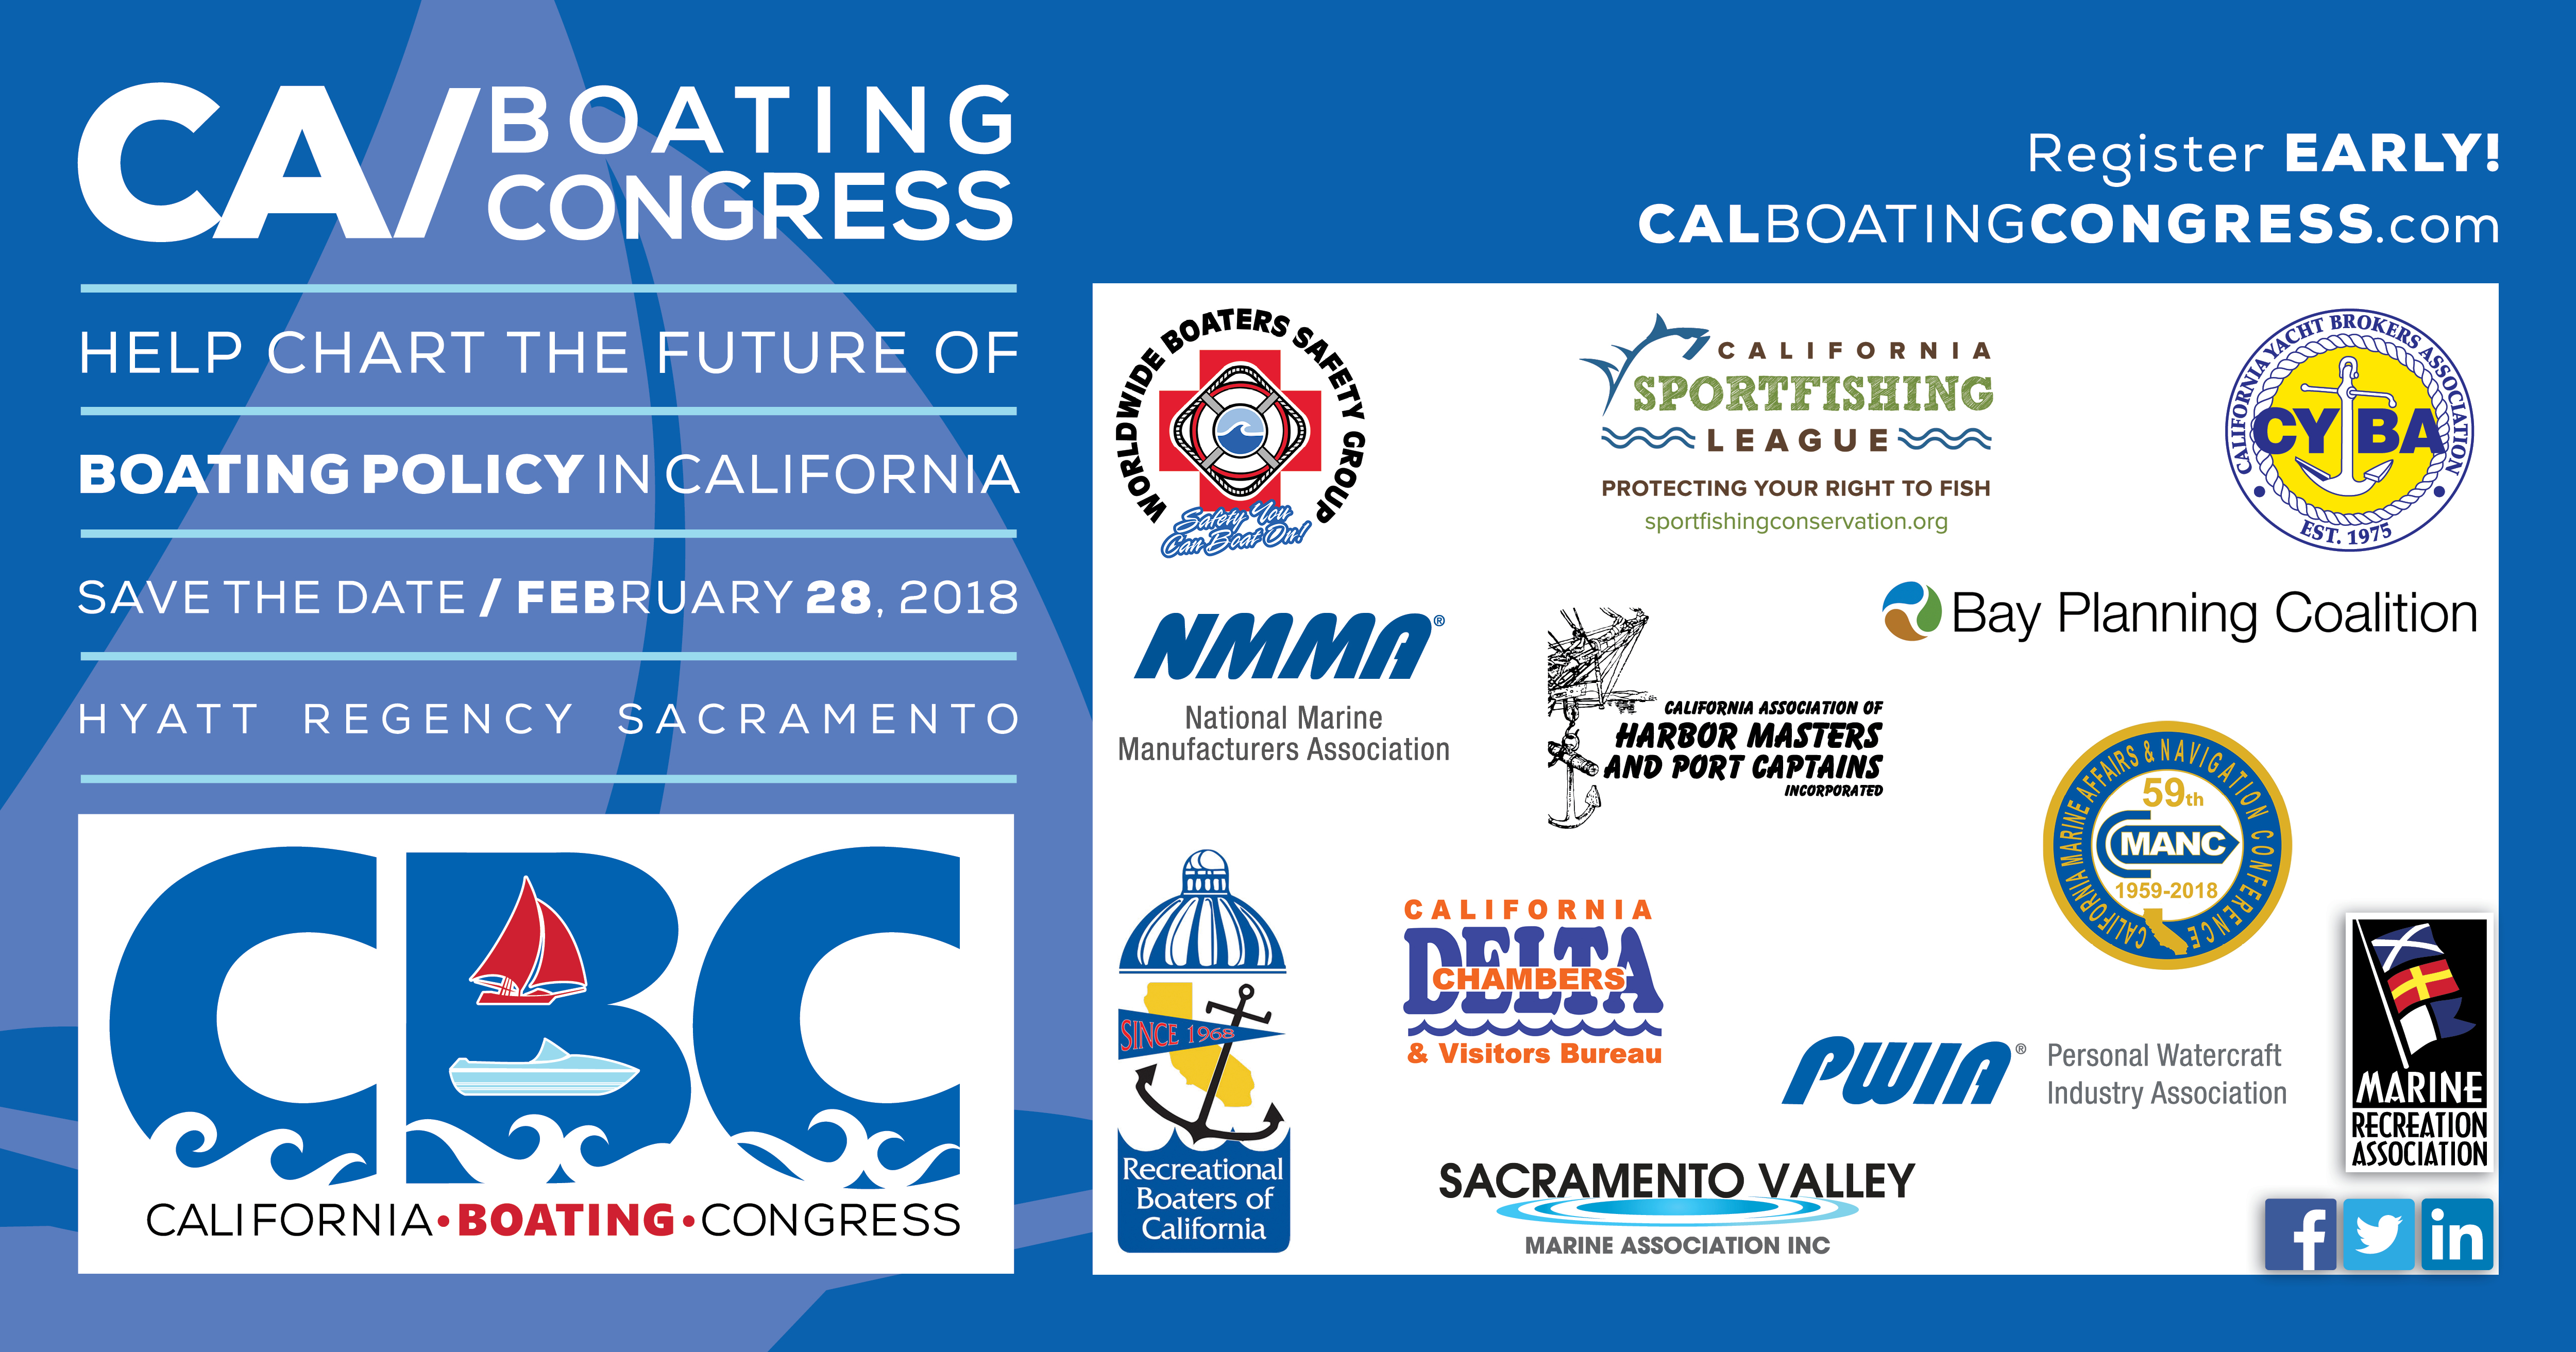 CalBoatingCongress